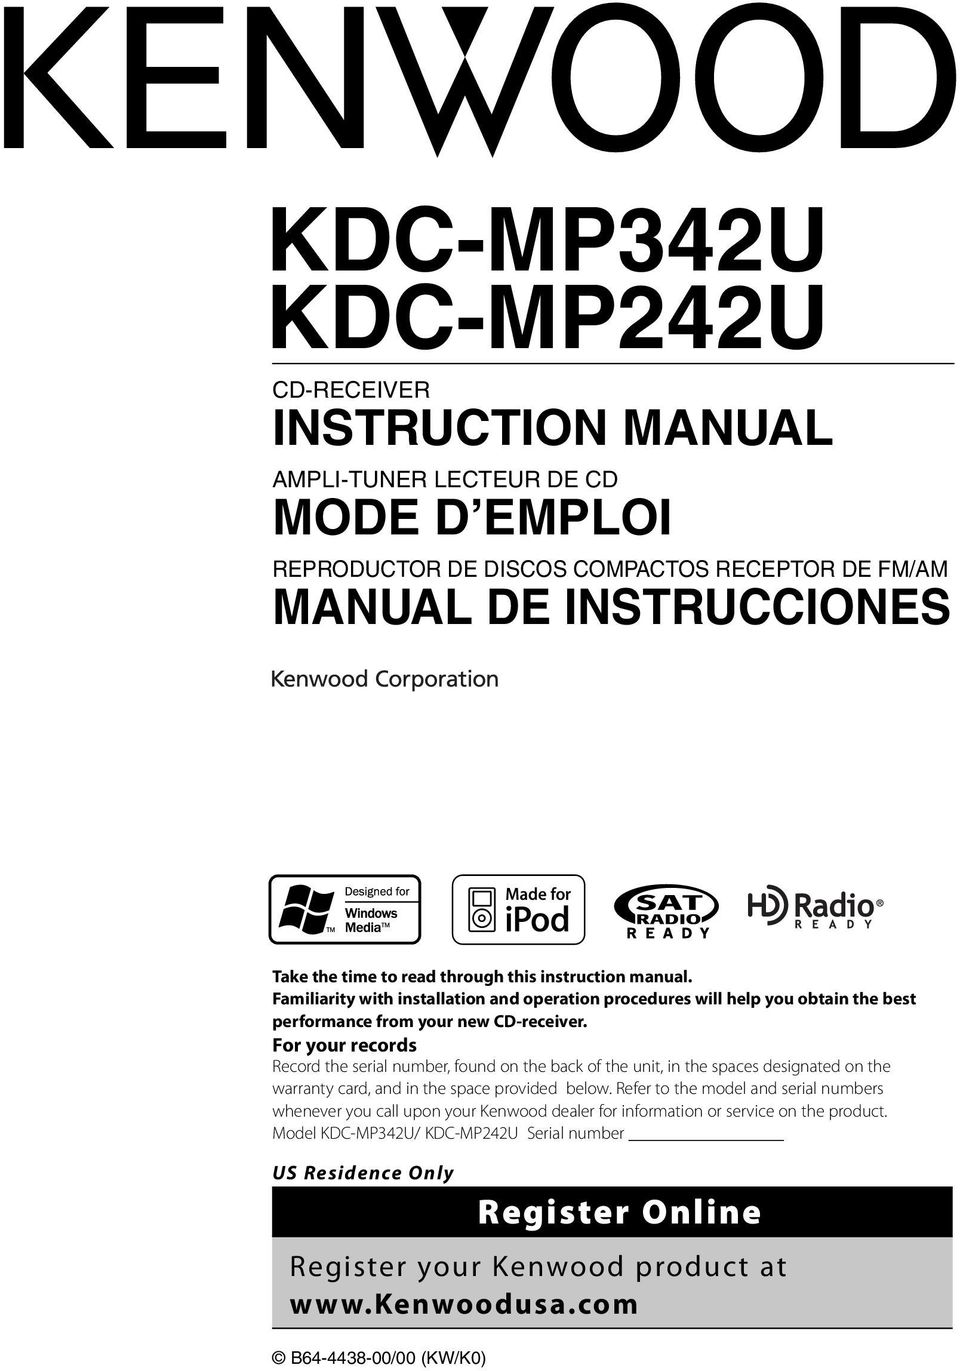 Kdc Mp342u Mp242u Pdf Kenwood X579 Wiring Harness For Your Records Record The Serial Number Found On Back Of Unit